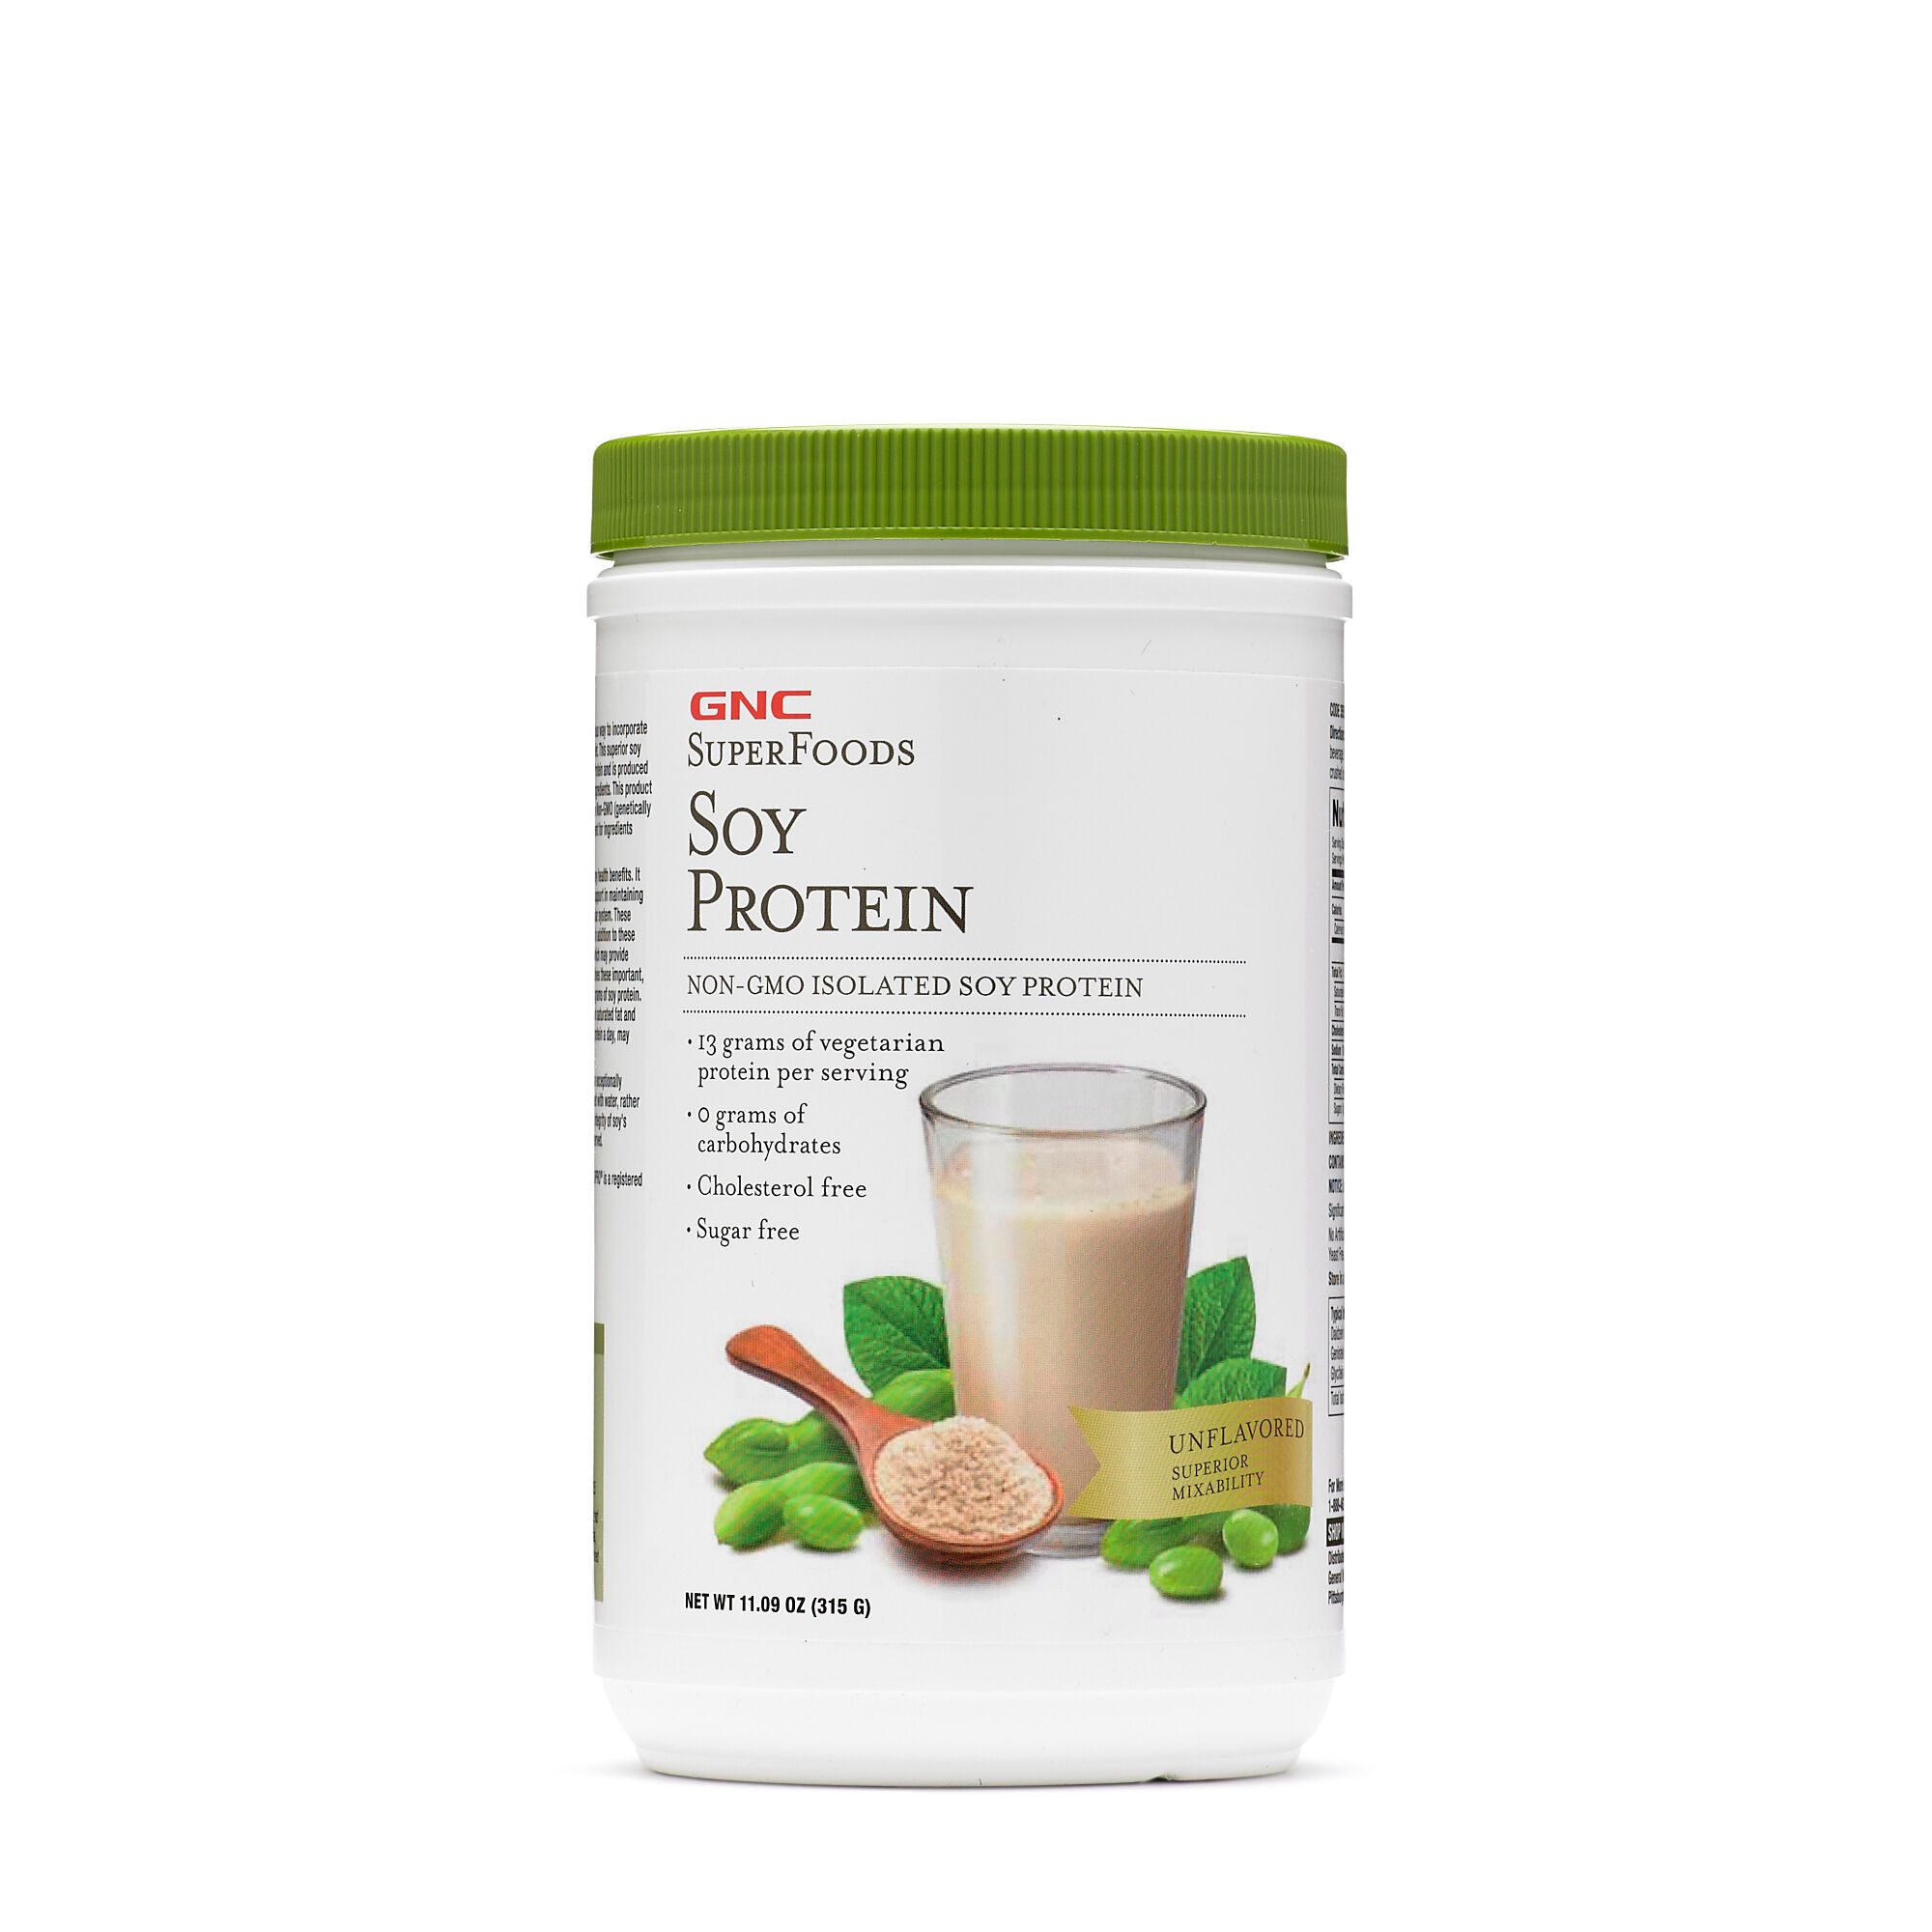 Soy Protein - Unflavored - 21 Servings - GNC Superfoods - GNC Protein Powders